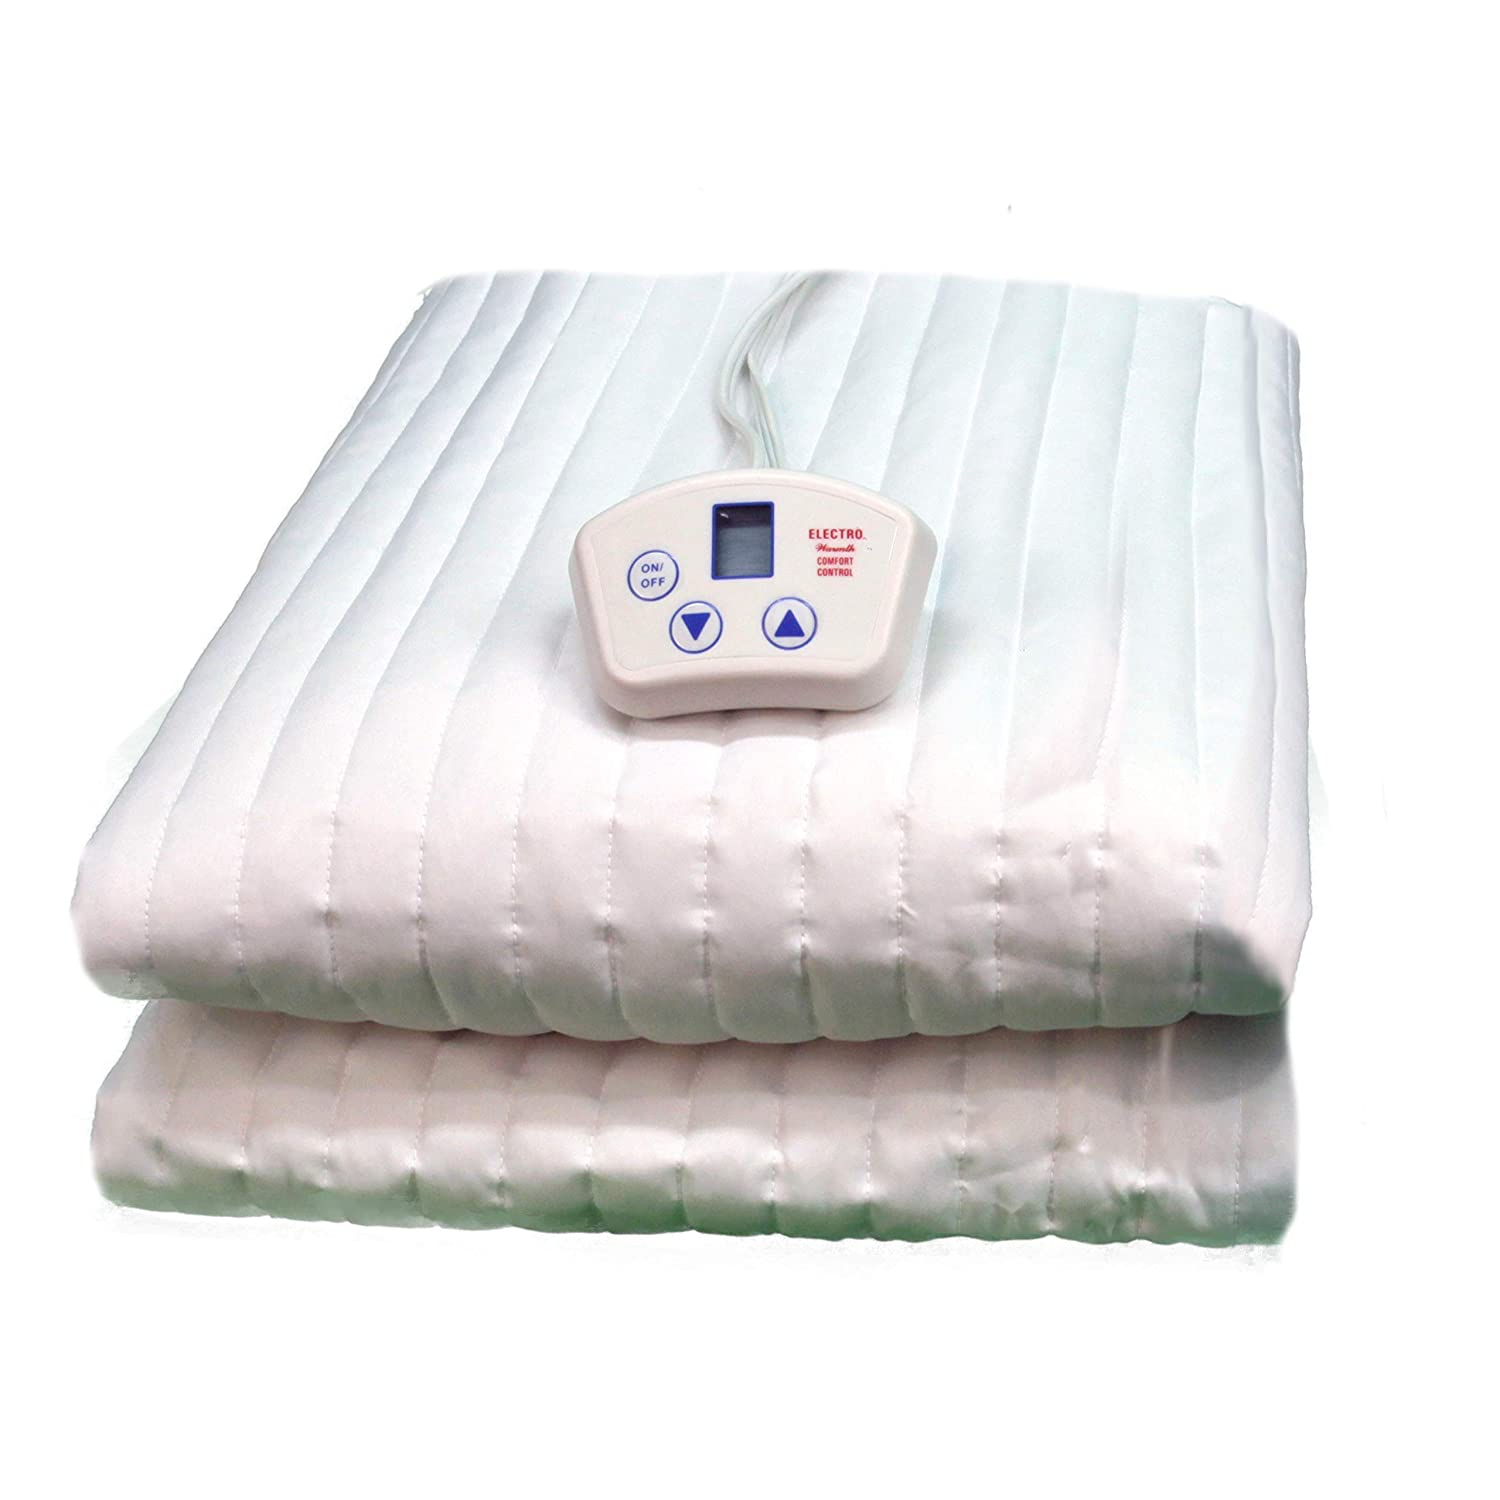 twin extra long heated mattress pad Amazon.com: Electrowarmth Twin Extra Long, White: Home & Kitchen twin extra long heated mattress pad